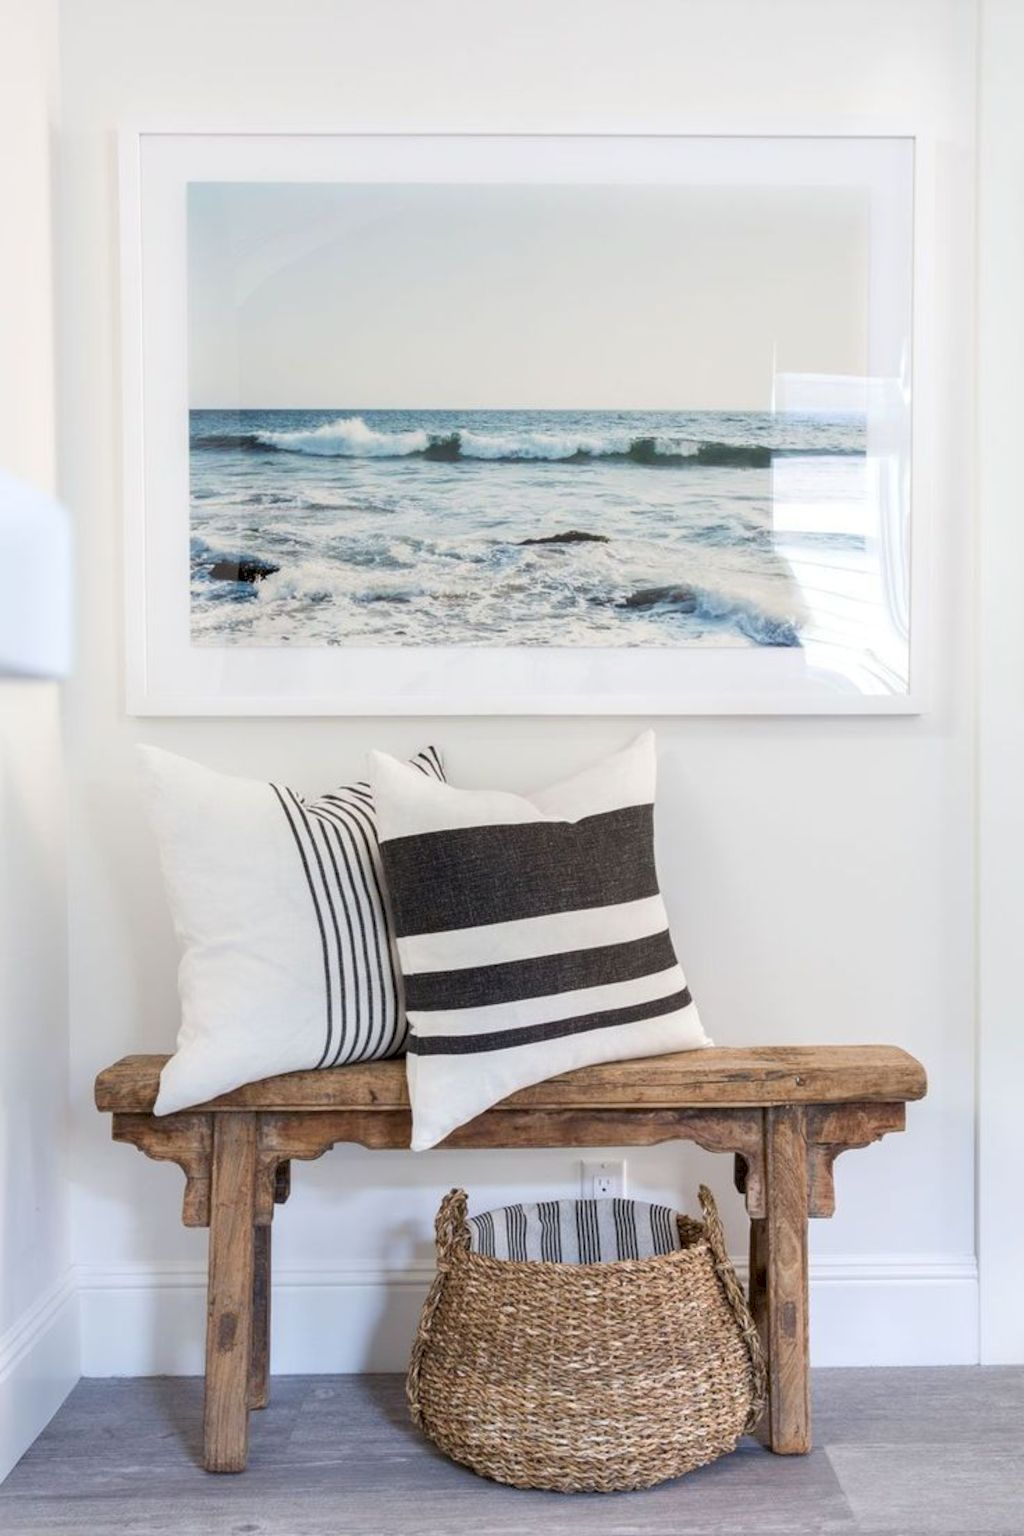 Coastal chic decoration with nautical accessories showing a fresh look in cool beach house styles Image 27